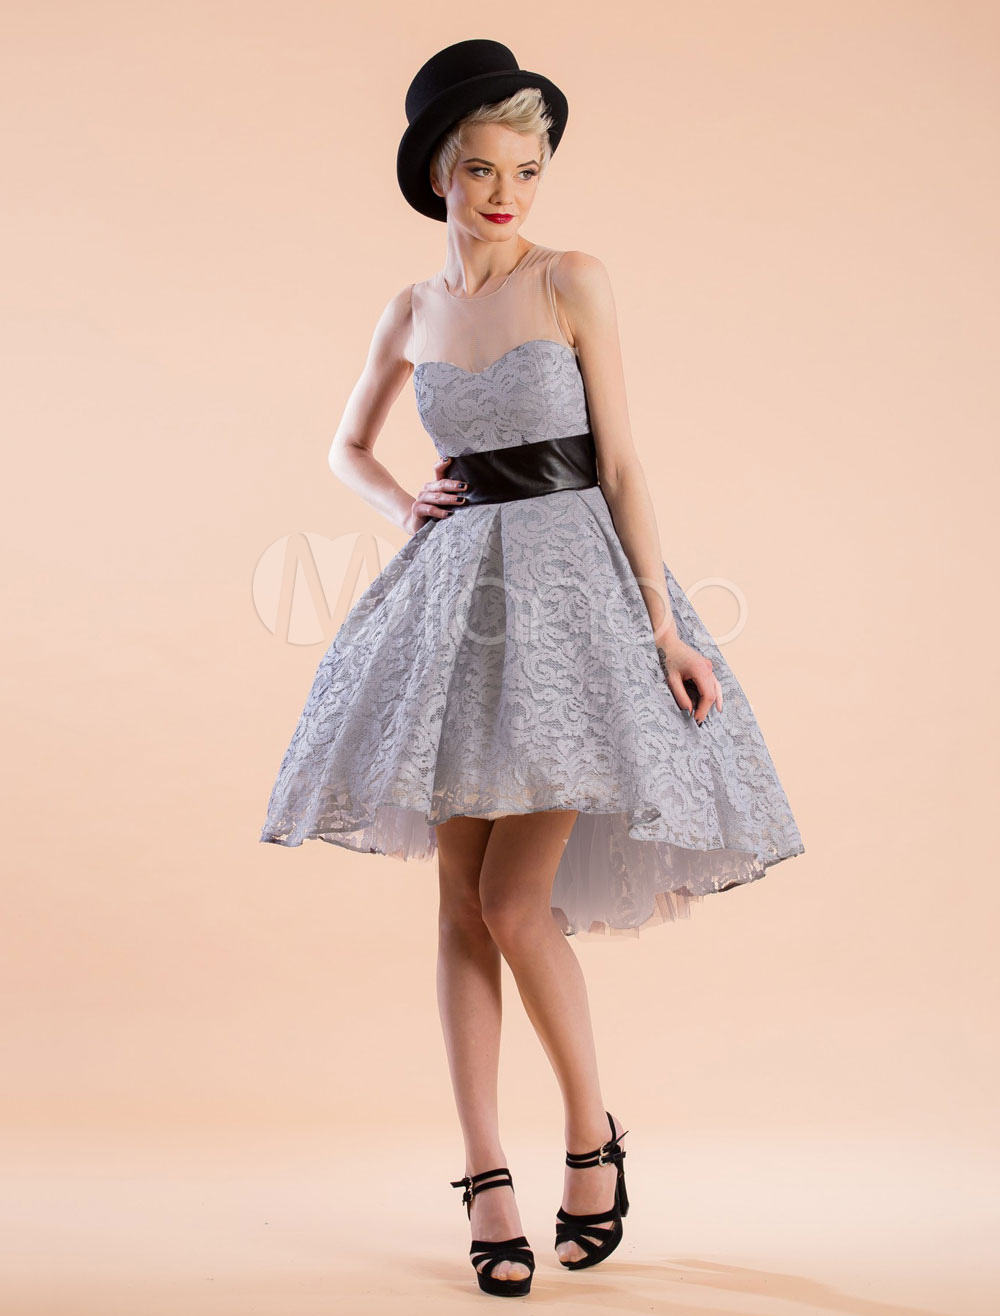 Buy Women Skater Dress Tulle Sleeveless Semi Sheer Pleated High Low Grey Lace Retro Dress for $22.99 in Milanoo store